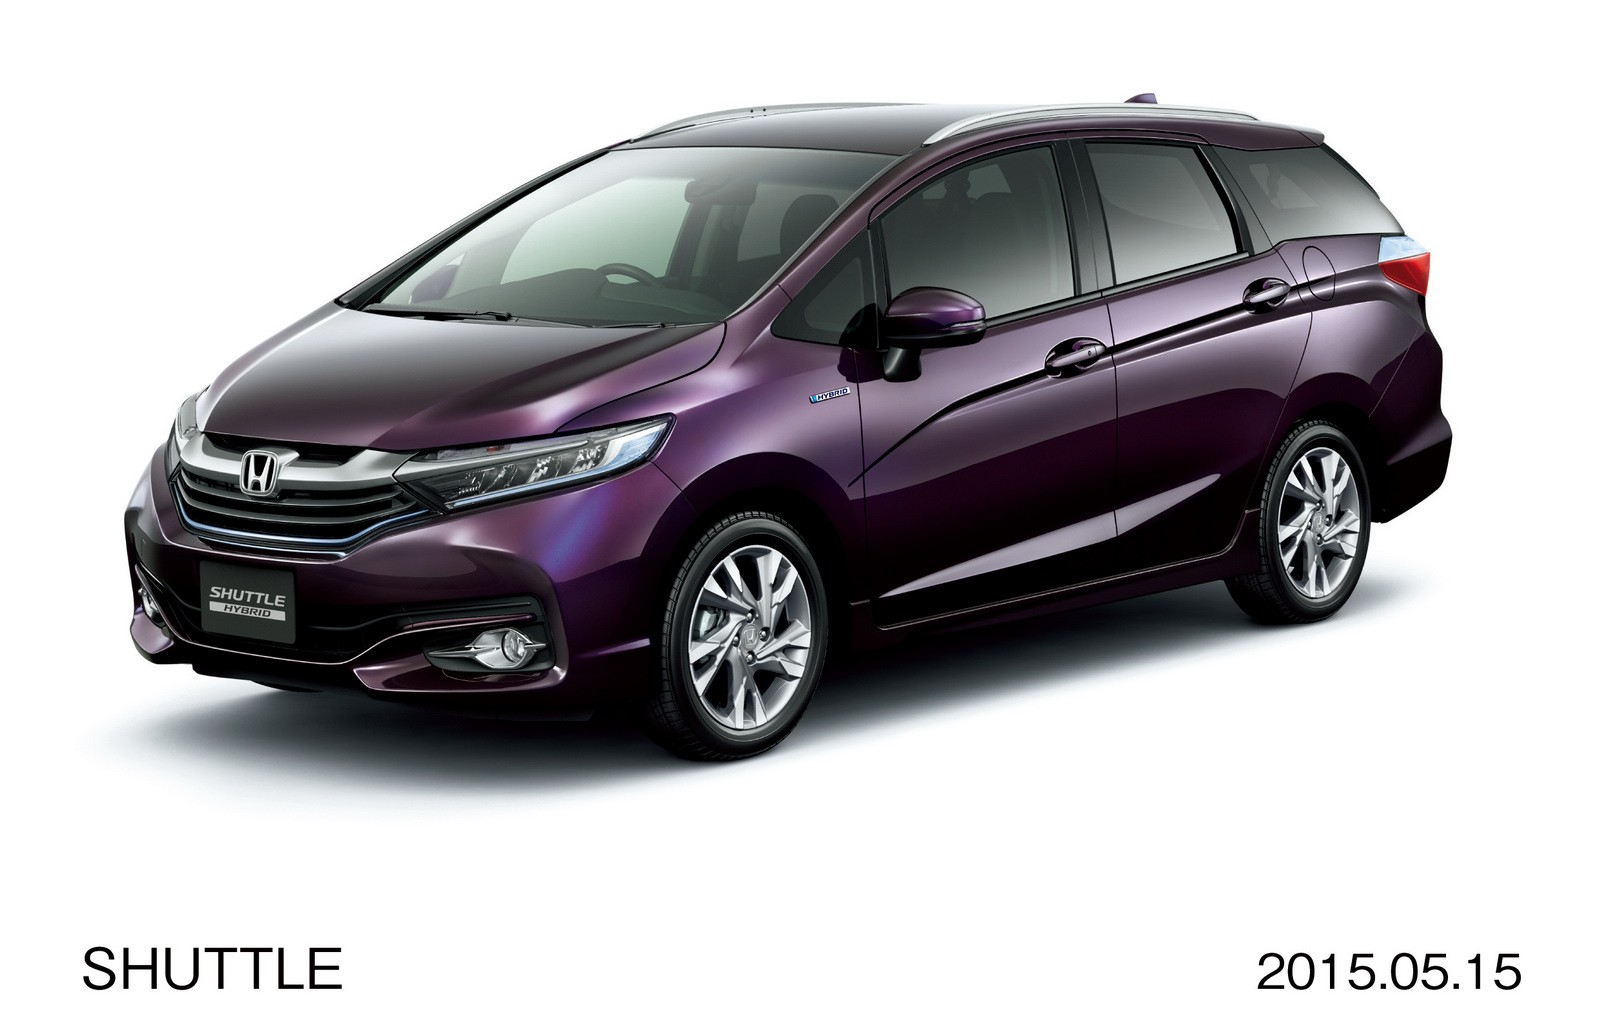 2015 Honda Shuttle Sales Have Kicked-Off in Japan ...